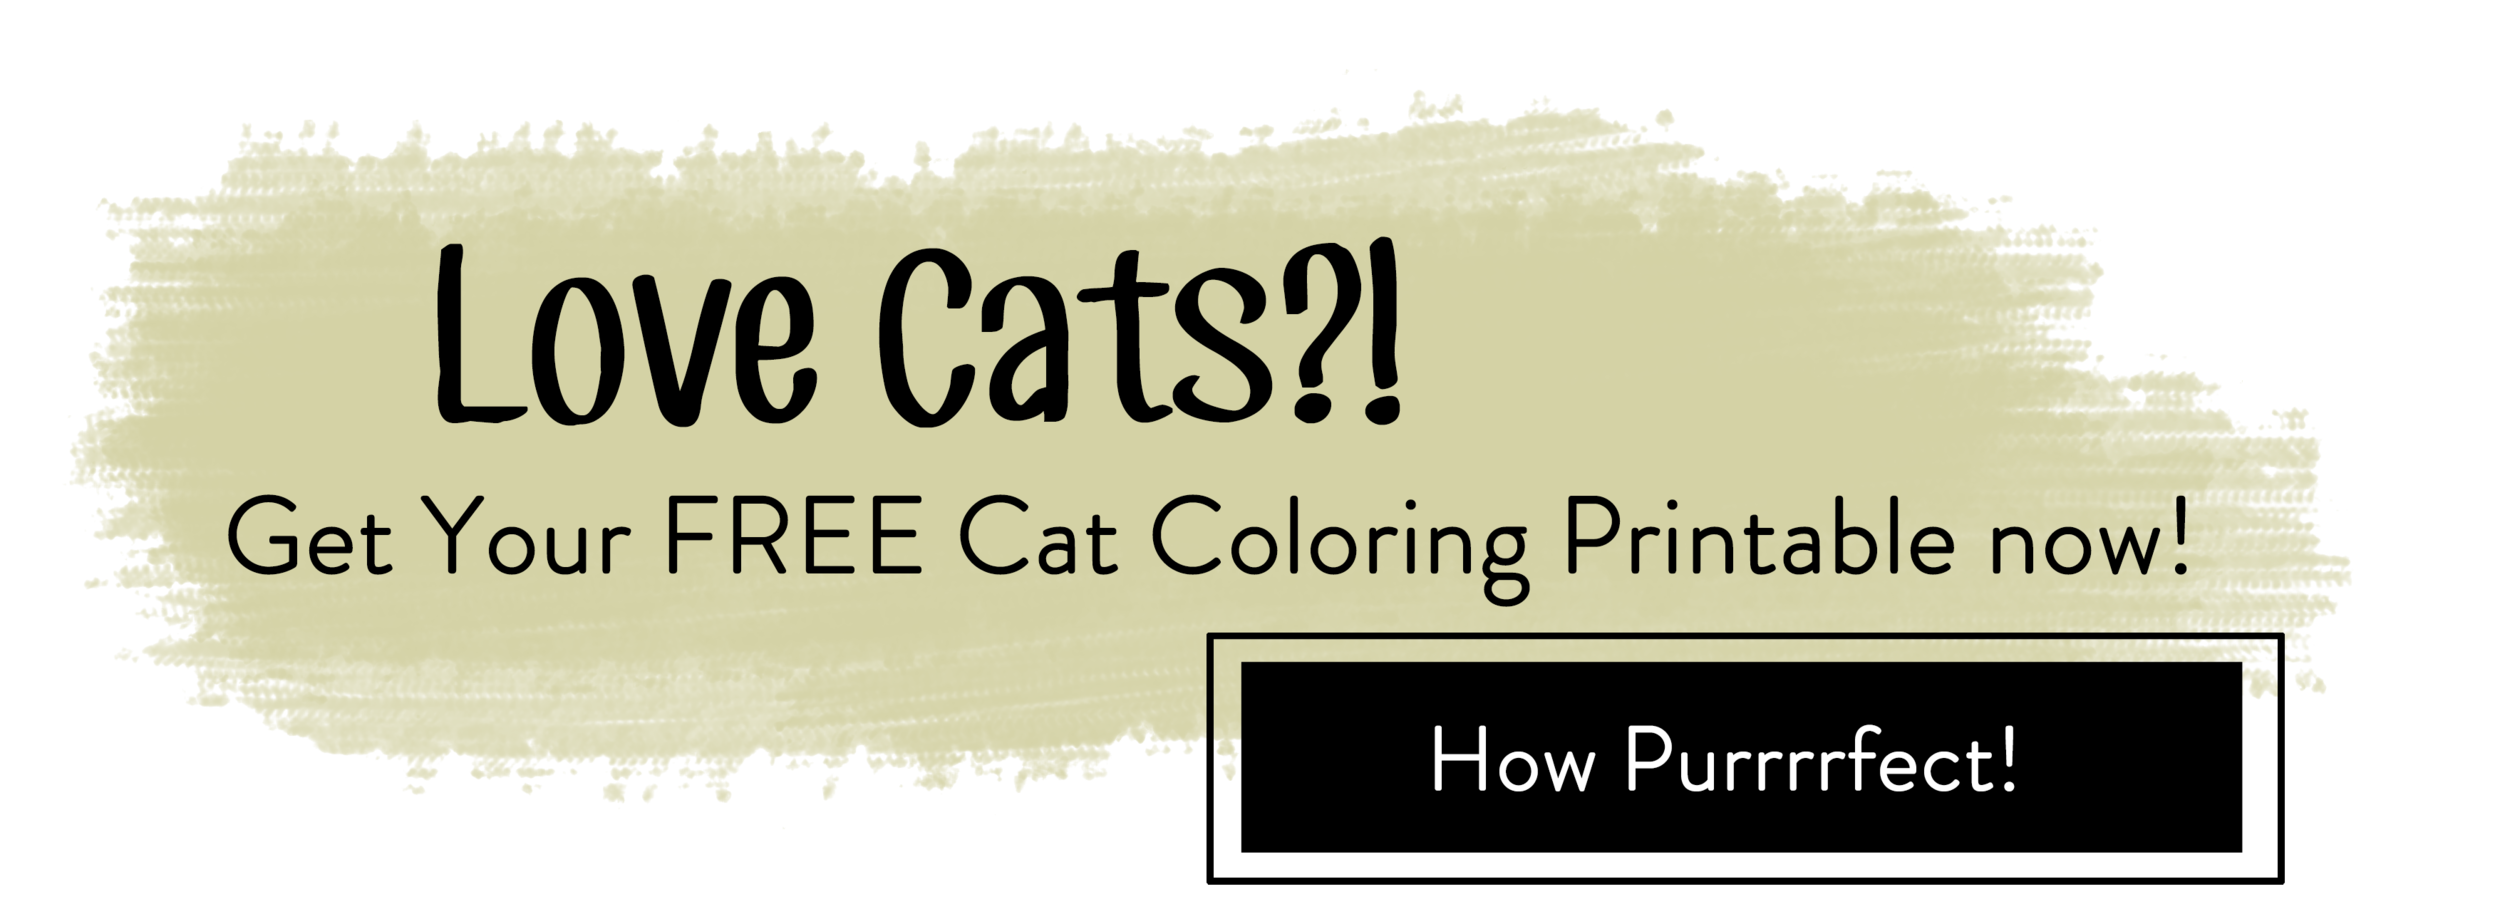 cat coloring page #catcoloring #printable